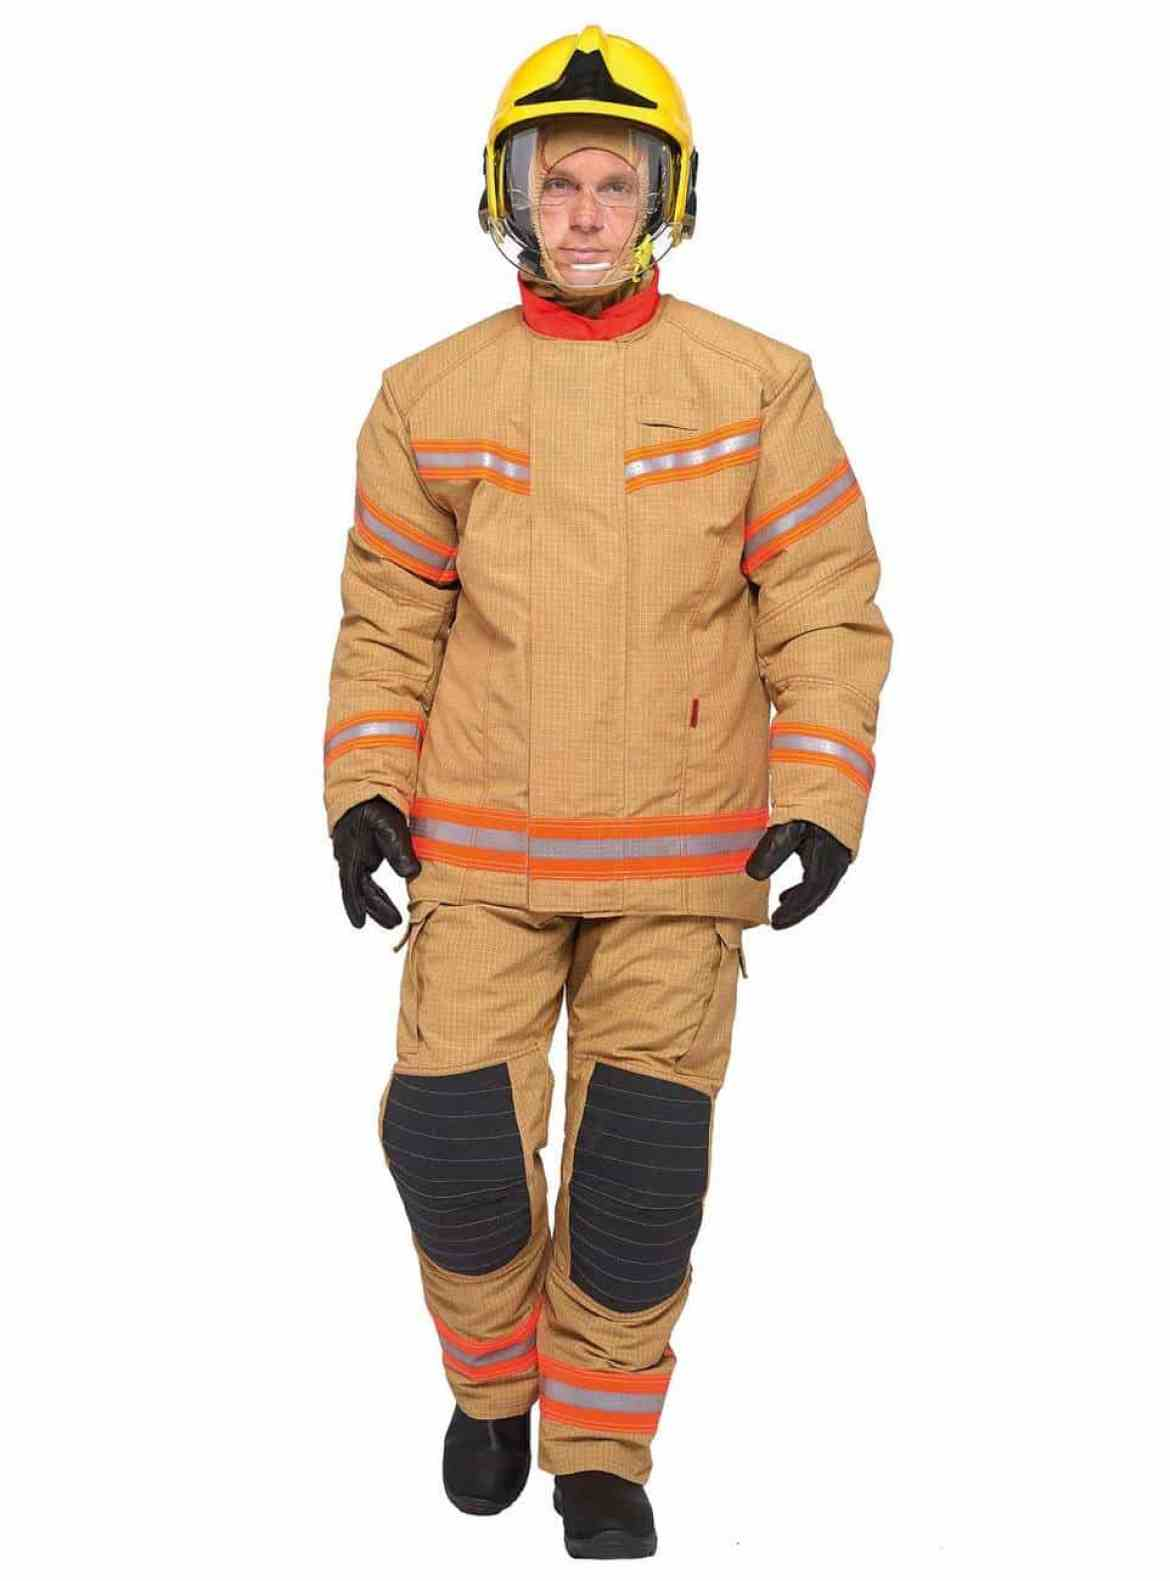 The set of three compatible garments in Bristol's LayerFlex range offer varying levels of protection to suit different operations.